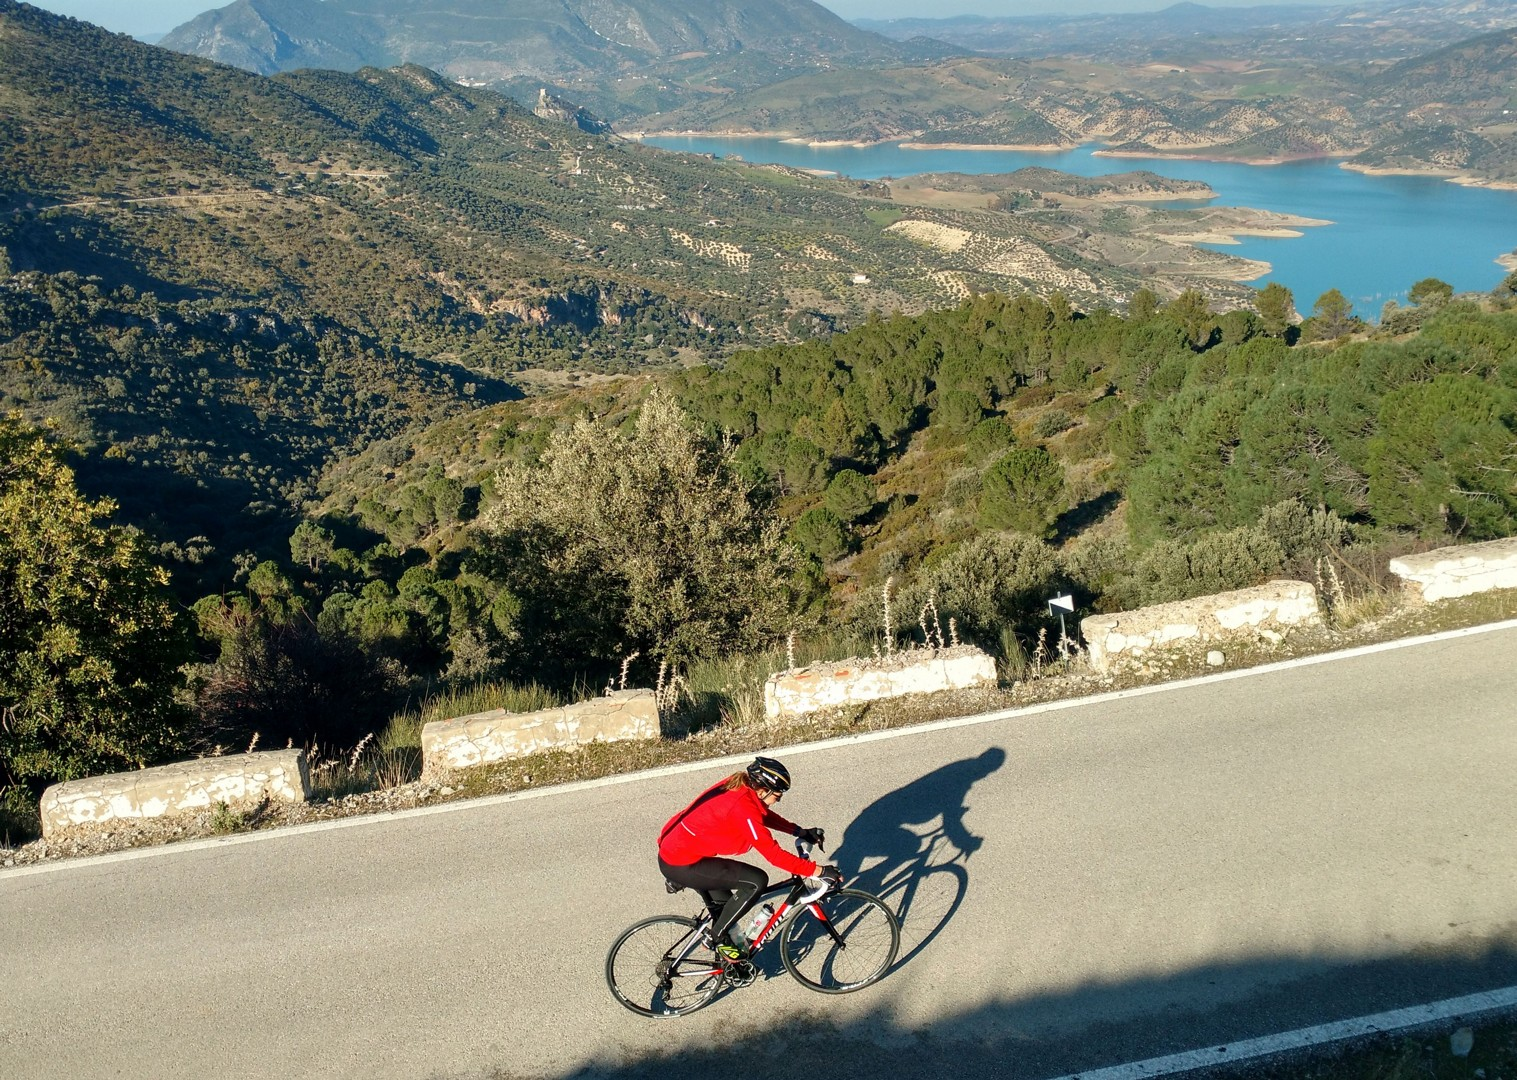 puerto-de-las-palomas-road-cycling-holiday-in-andalucia-spain.jpg - Southern Spain - Andalucia - Los Pueblos Blancos - Self-Guided Road Cycling Holiday - Road Cycling